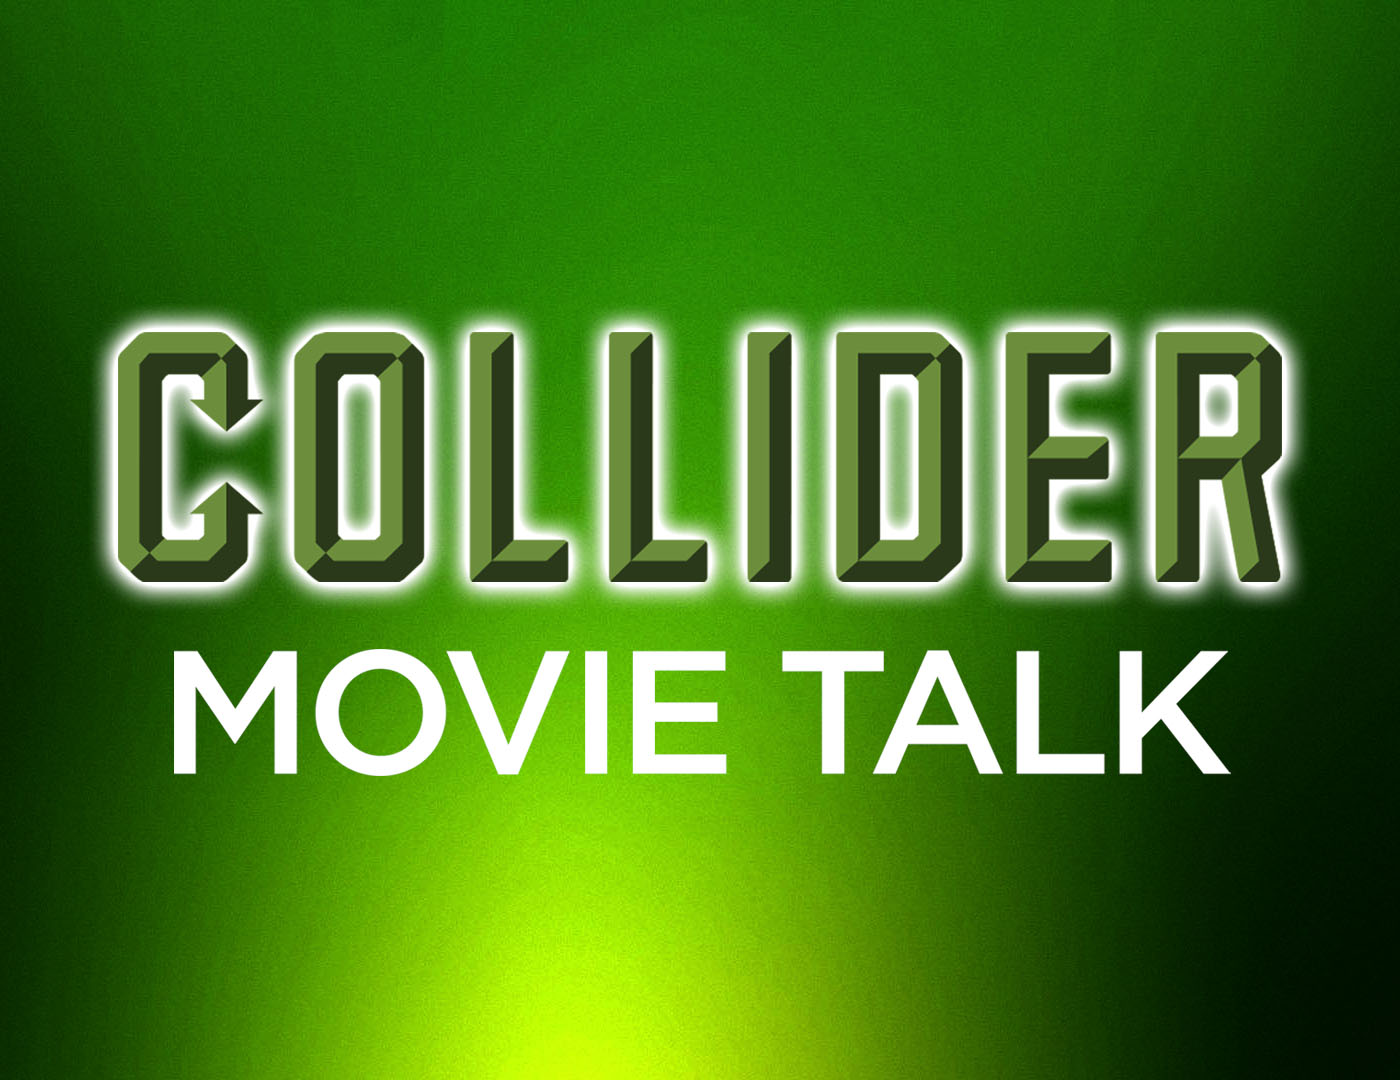 Collider Movie Talk - Will Colin Firth Return For Kingsman Sequel? New The Revenant Trailer